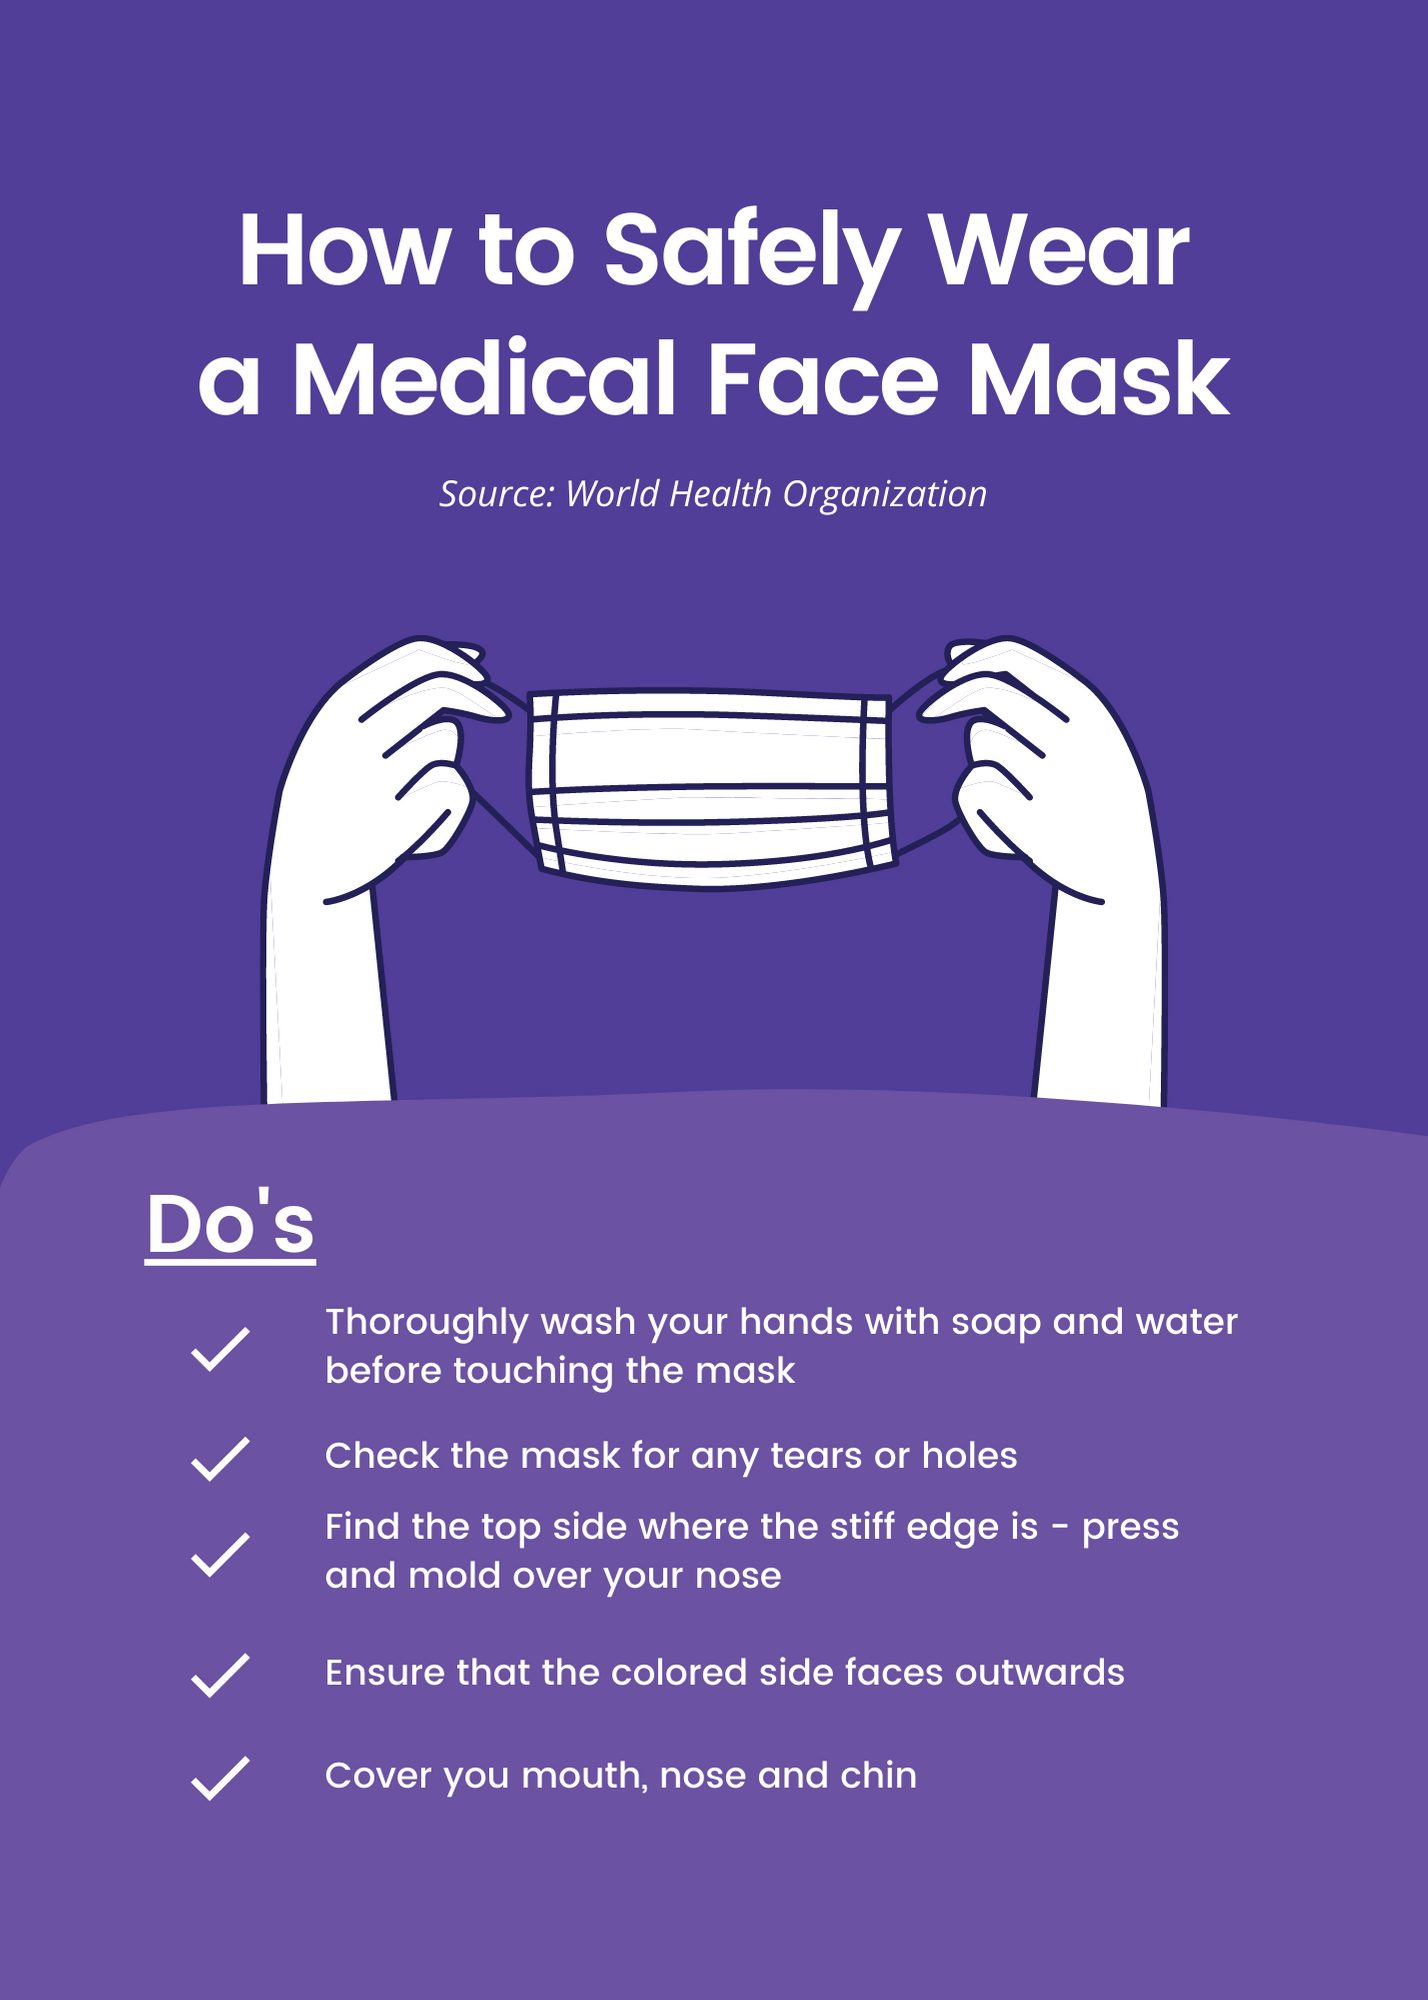 How to safely wear a mask infographic 1